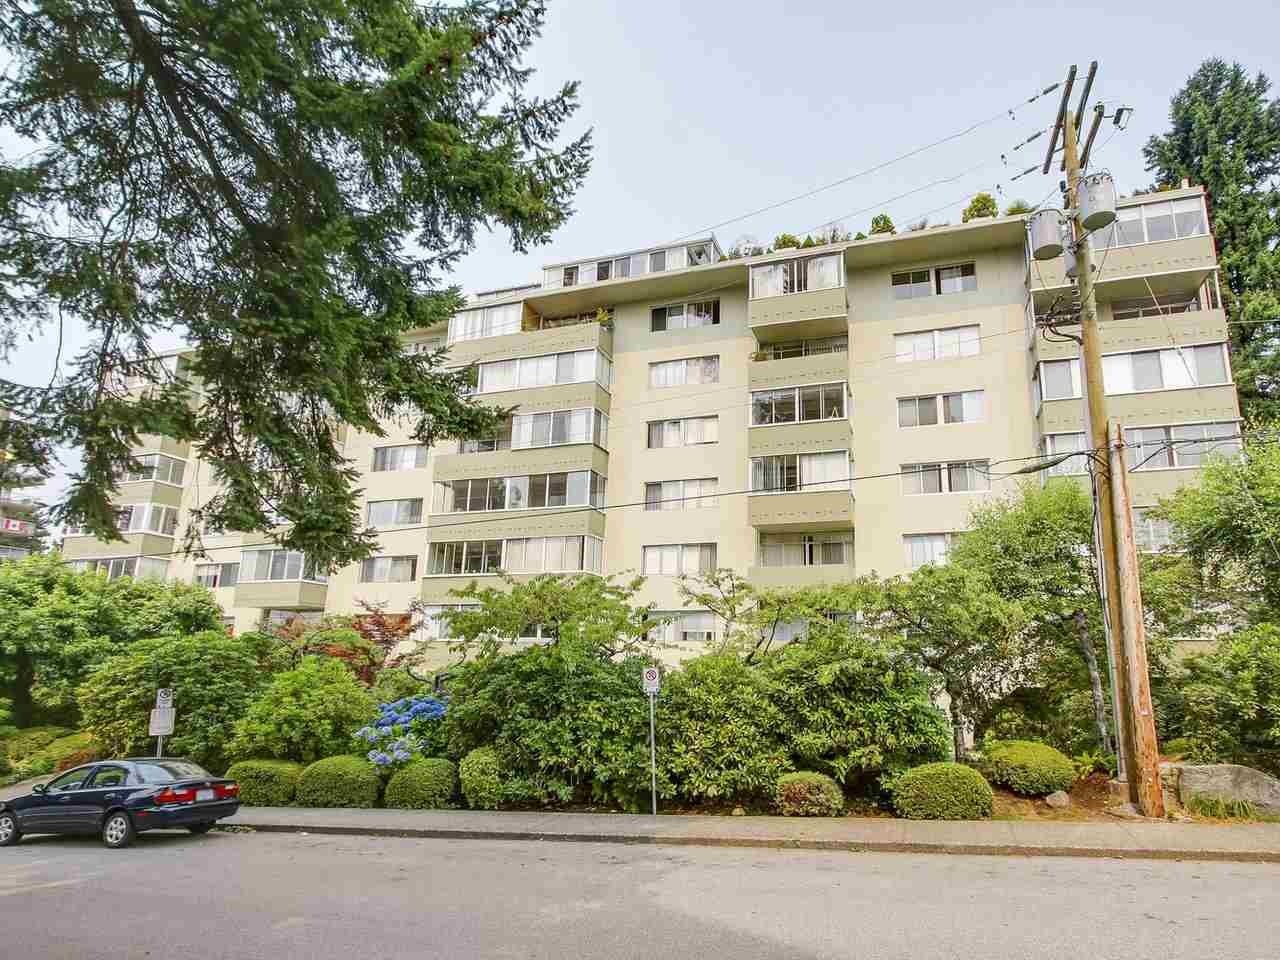 Main Photo: 606 1425 ESQUIMALT AVENUE in West Vancouver: Ambleside Condo for sale : MLS®# R2194722